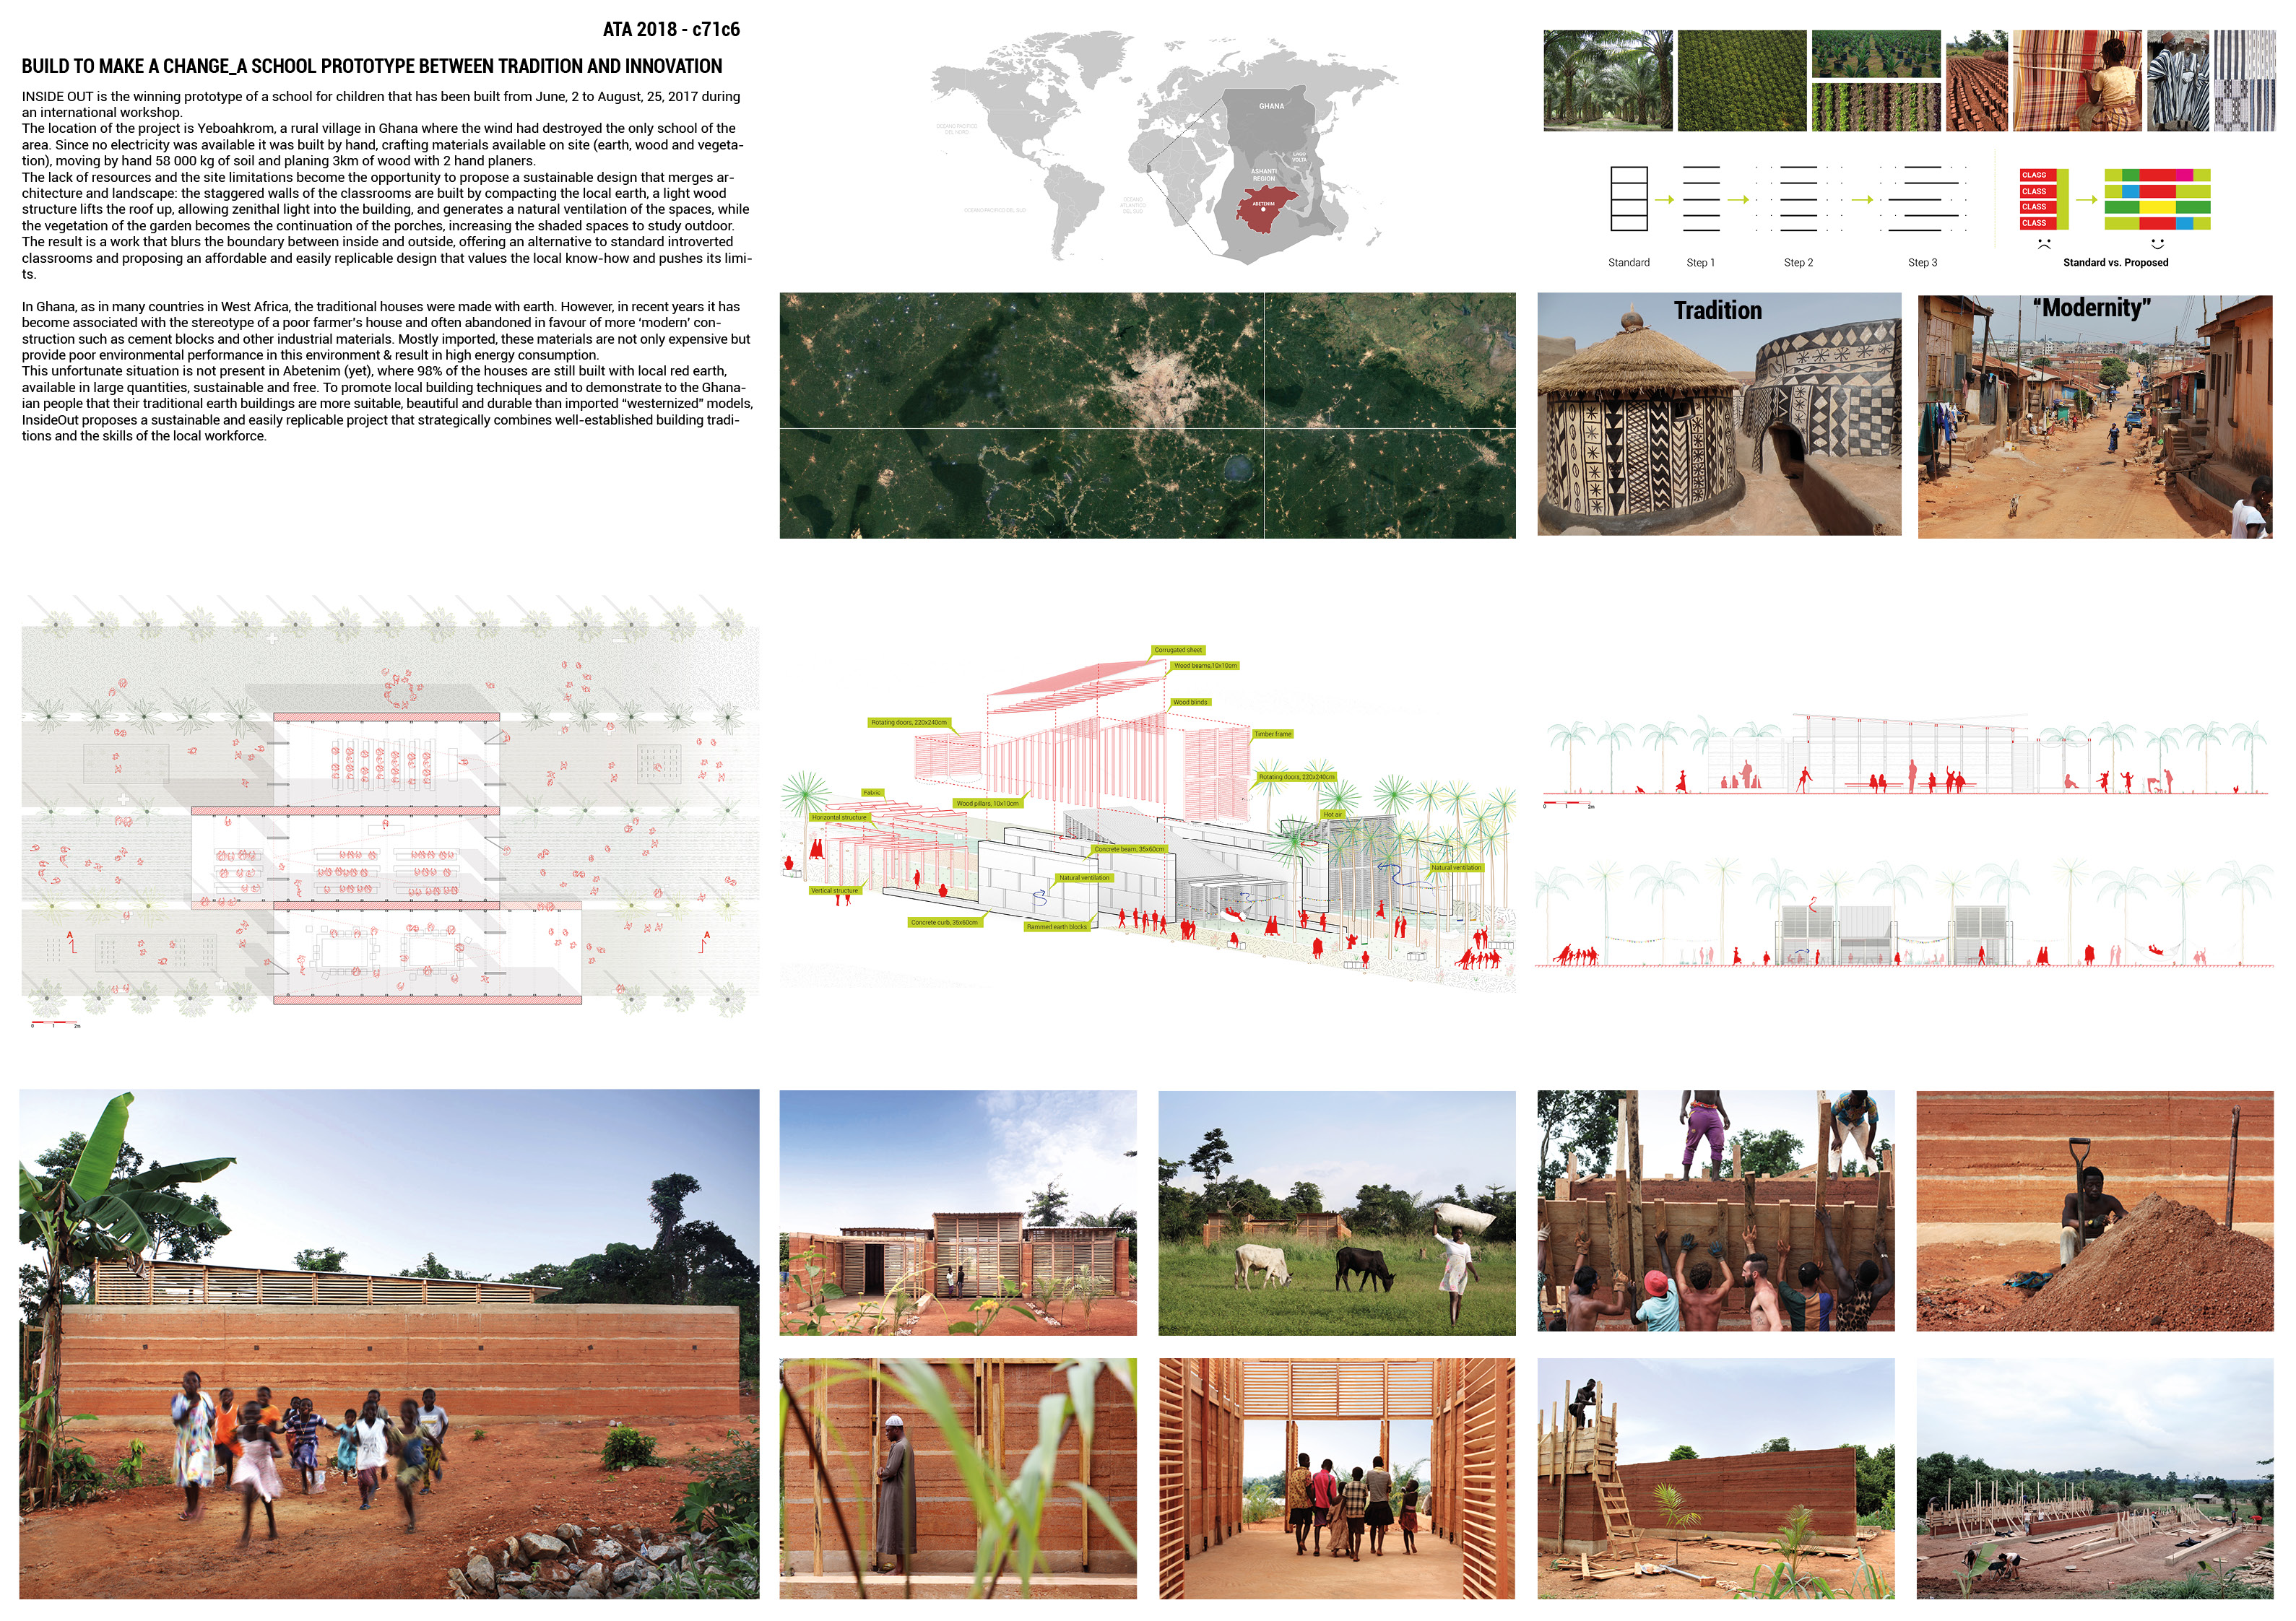 Build to make a change_A school prototype between tradition and innovation in Ghana Board